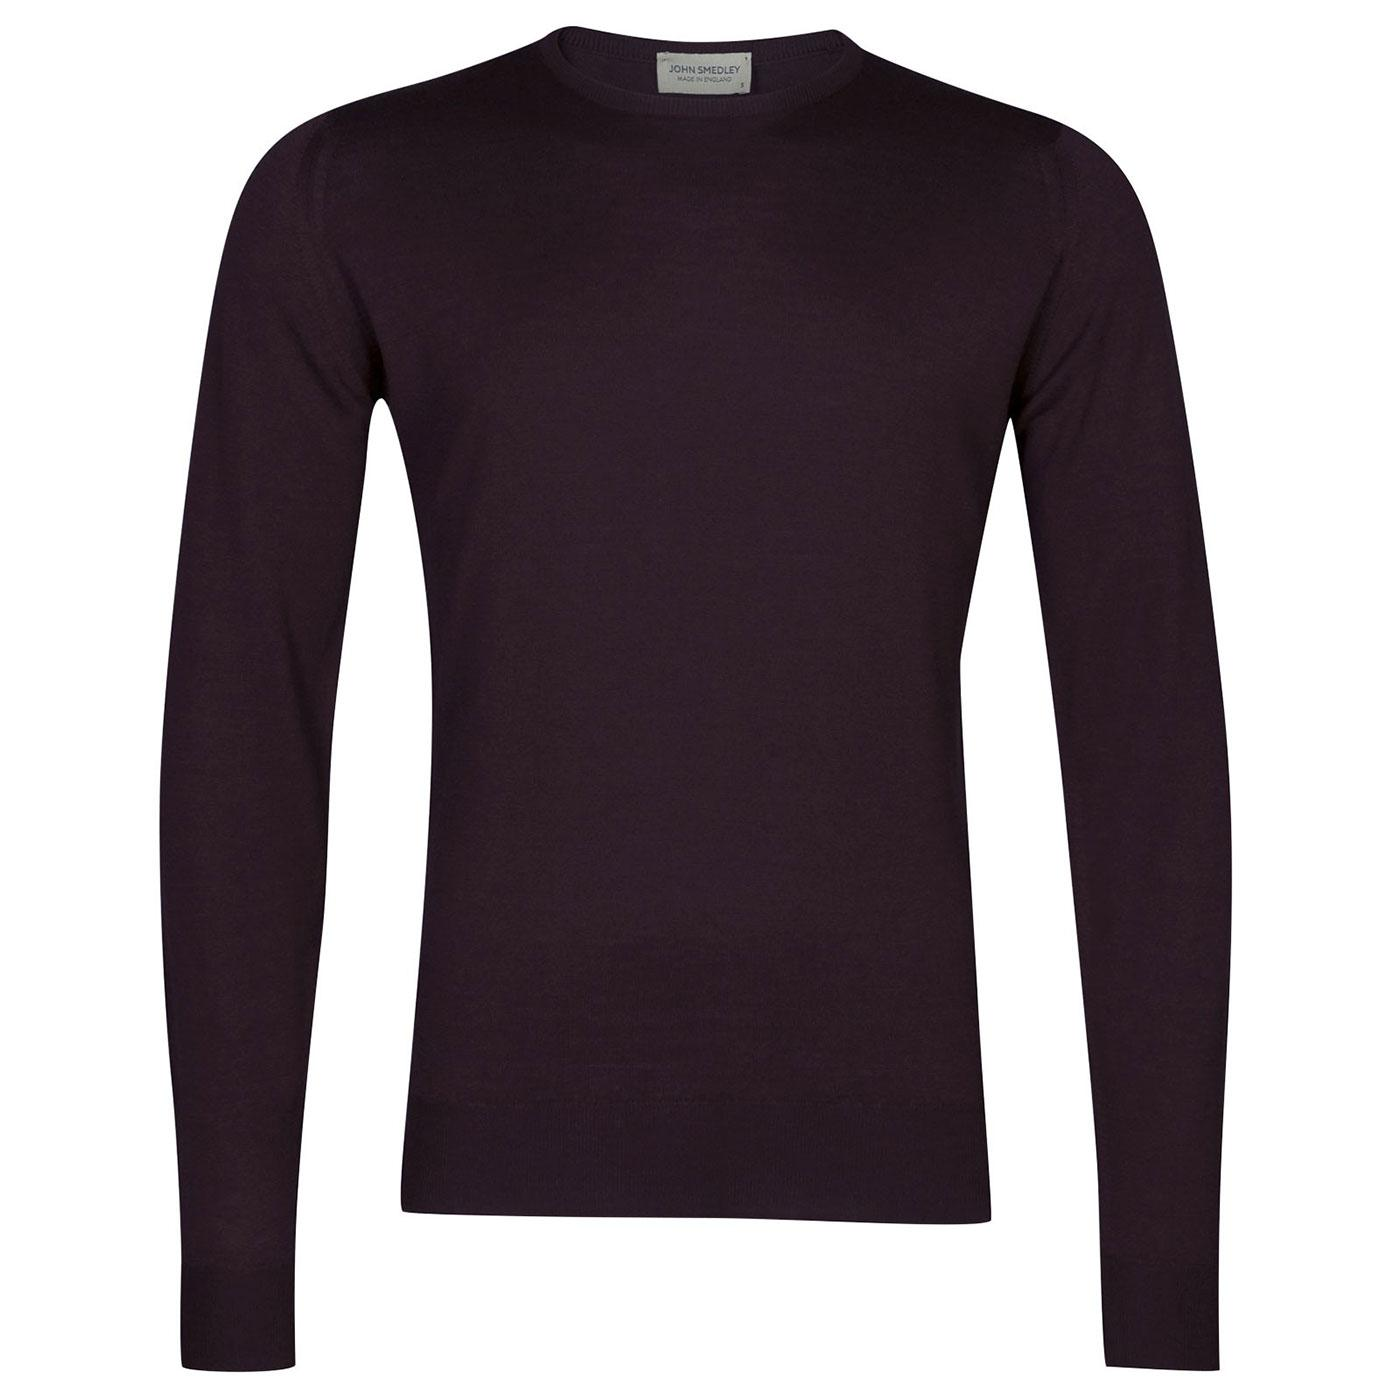 Lundy JOHN SMEDLEY Knitted Merino Wool Pullover PC